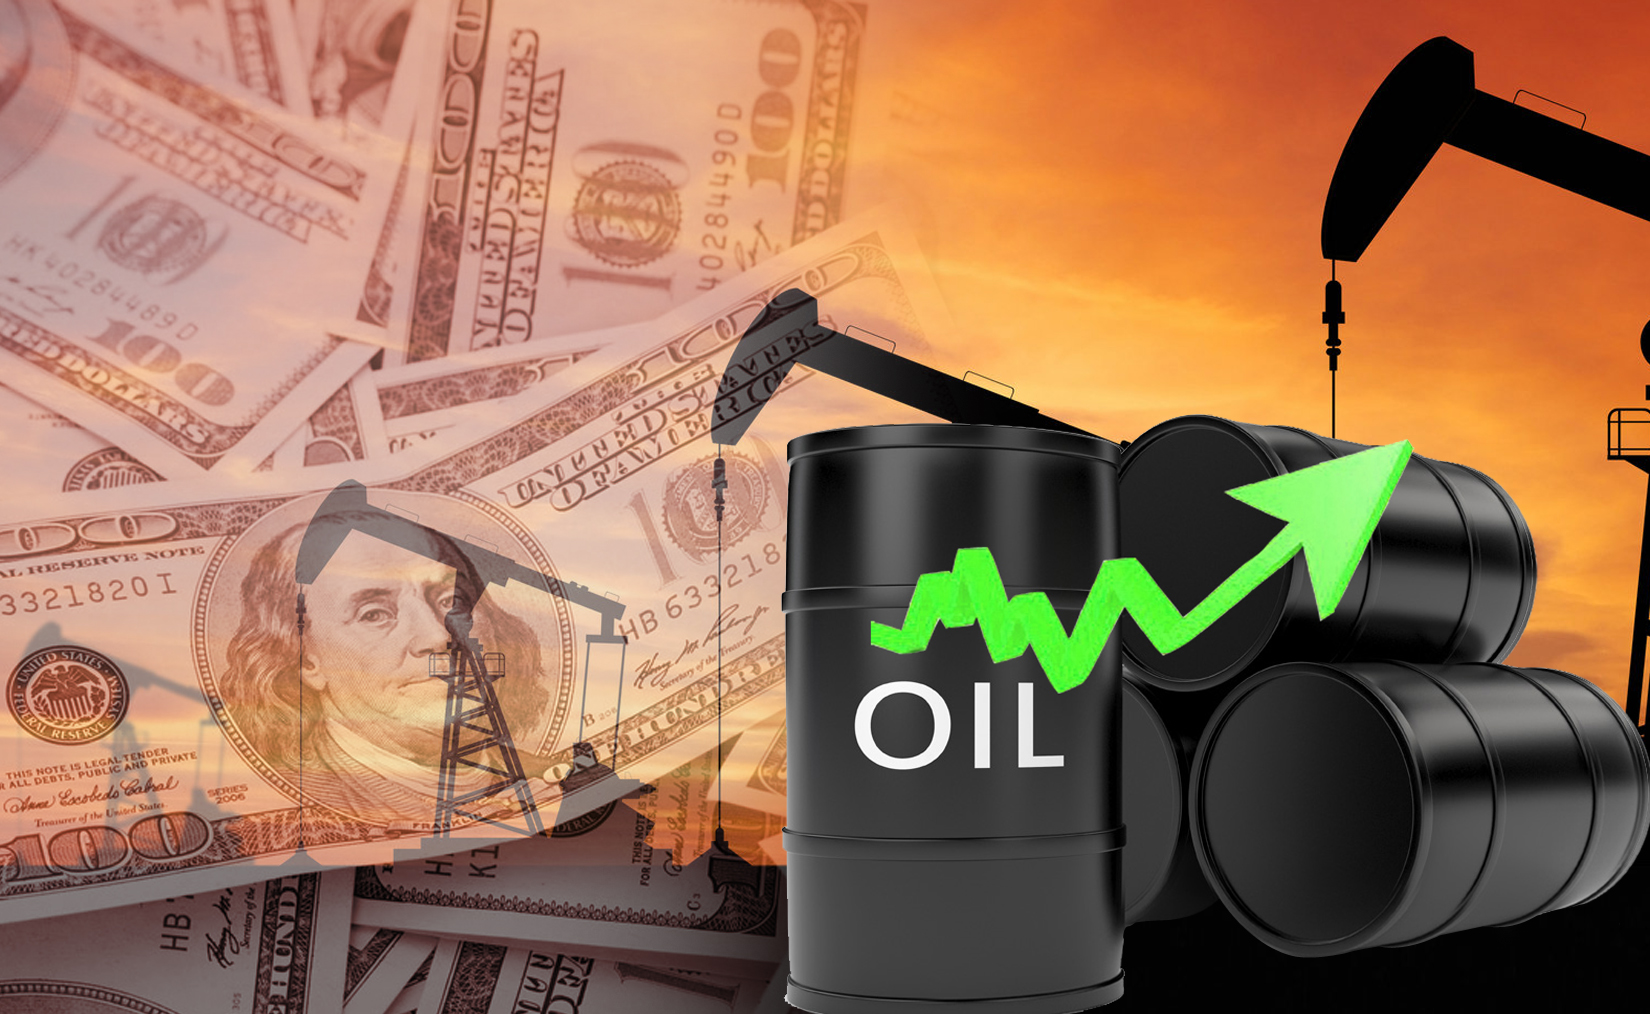 Kuwait oil price up 48 cents to USD 67.74 pb